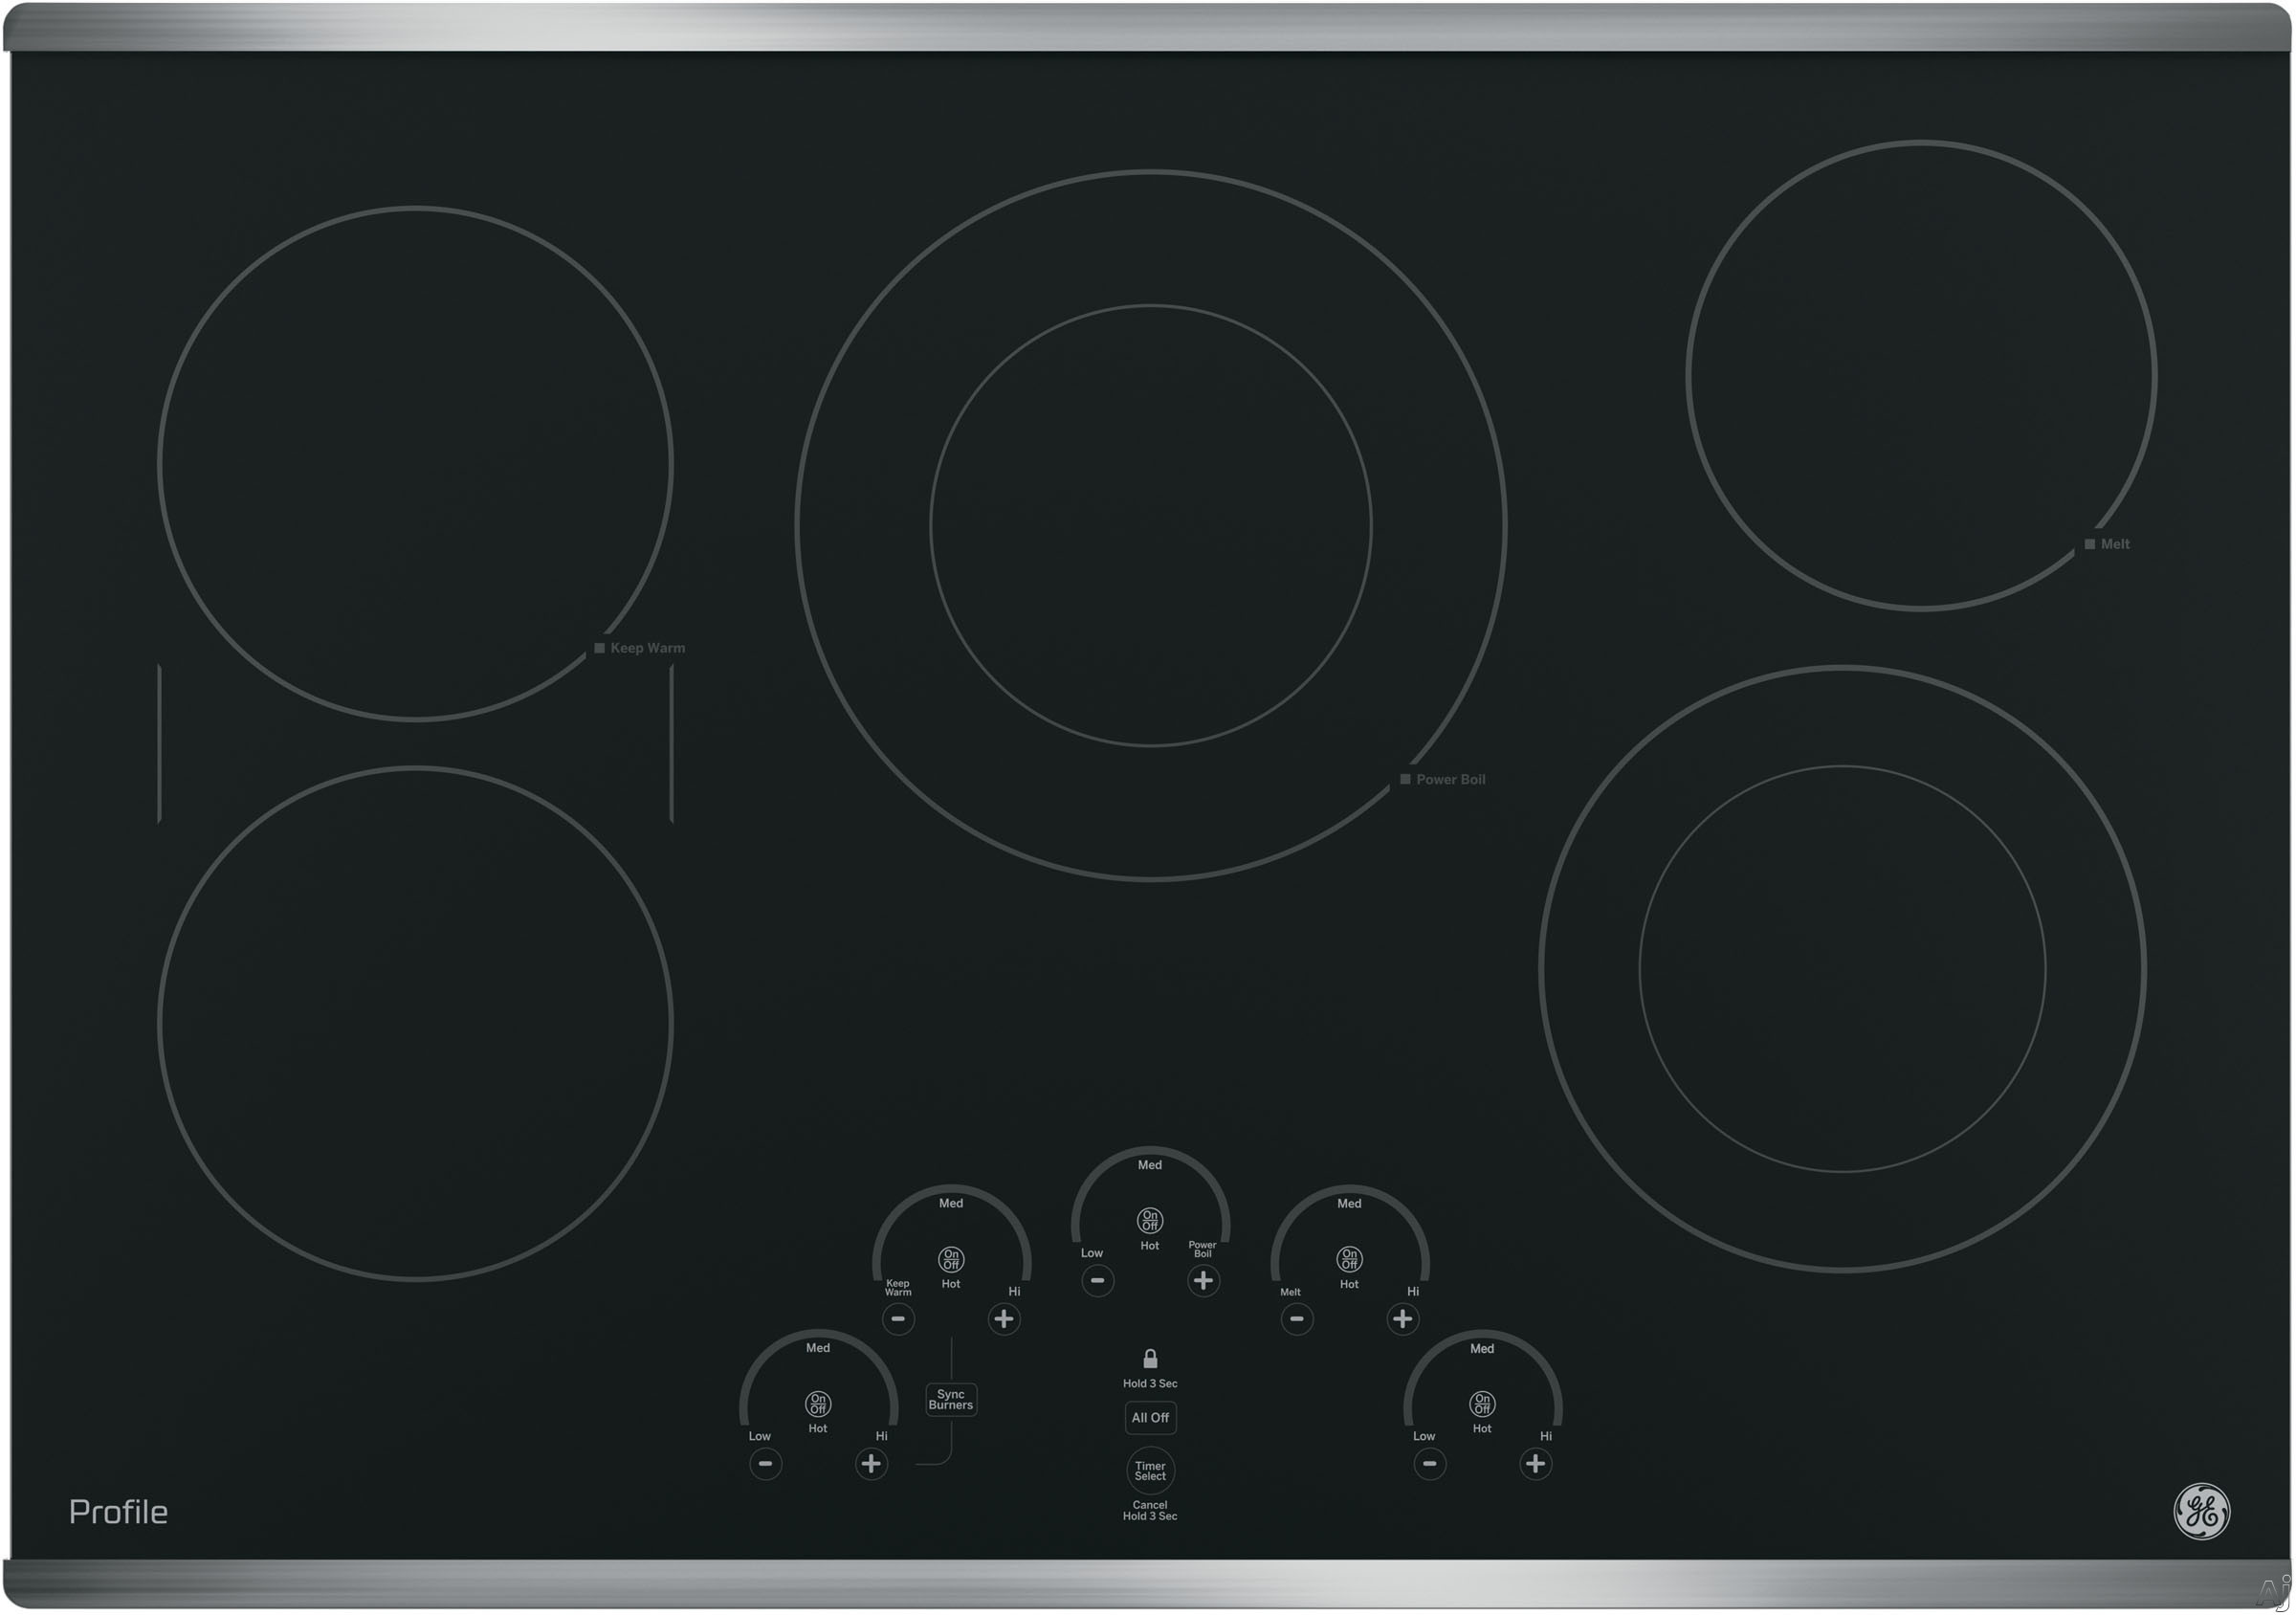 GE Profile PP9030SJSS 30 Inch Smoothtop Electric Cooktop with 5 Radiant Elements, Left-Side Bridge SyncBurners, Glide Touch Controls, Multi-Element Timers, Melt/Keep Warm Setting, ADA Compliant and GE